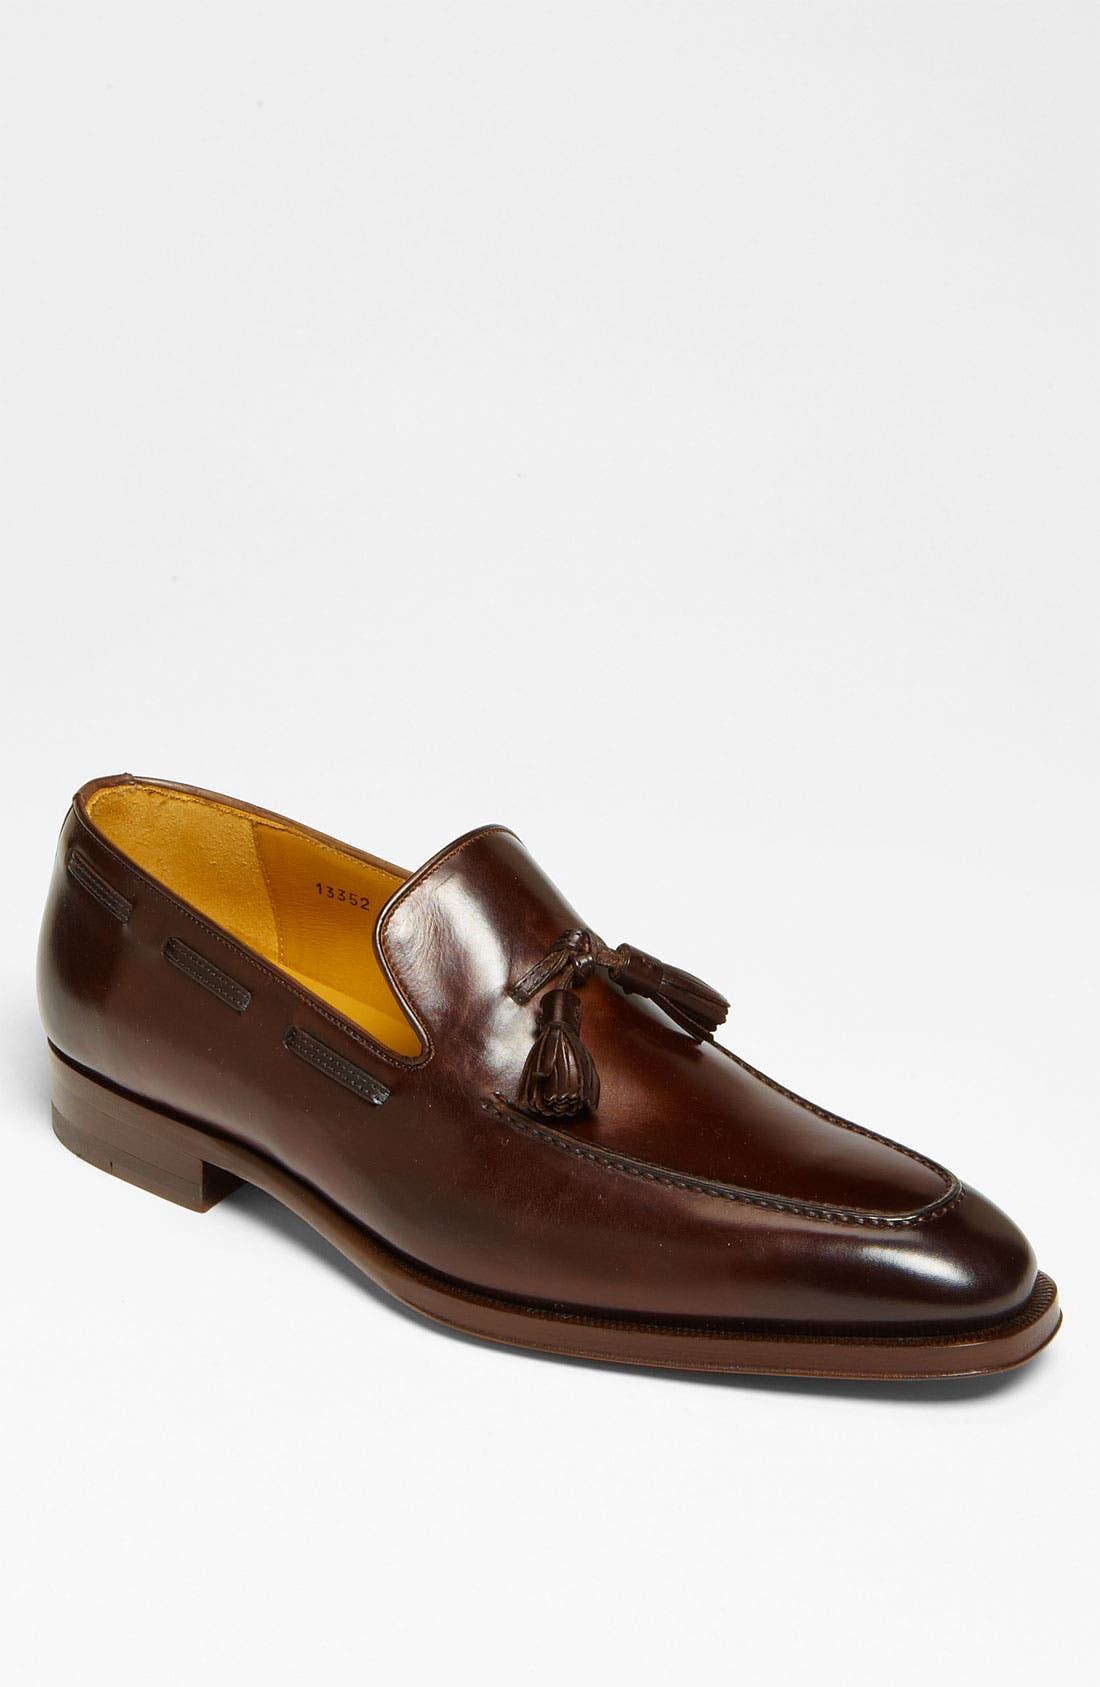 Main Image - Magnanni 'Miguel' Slip-On